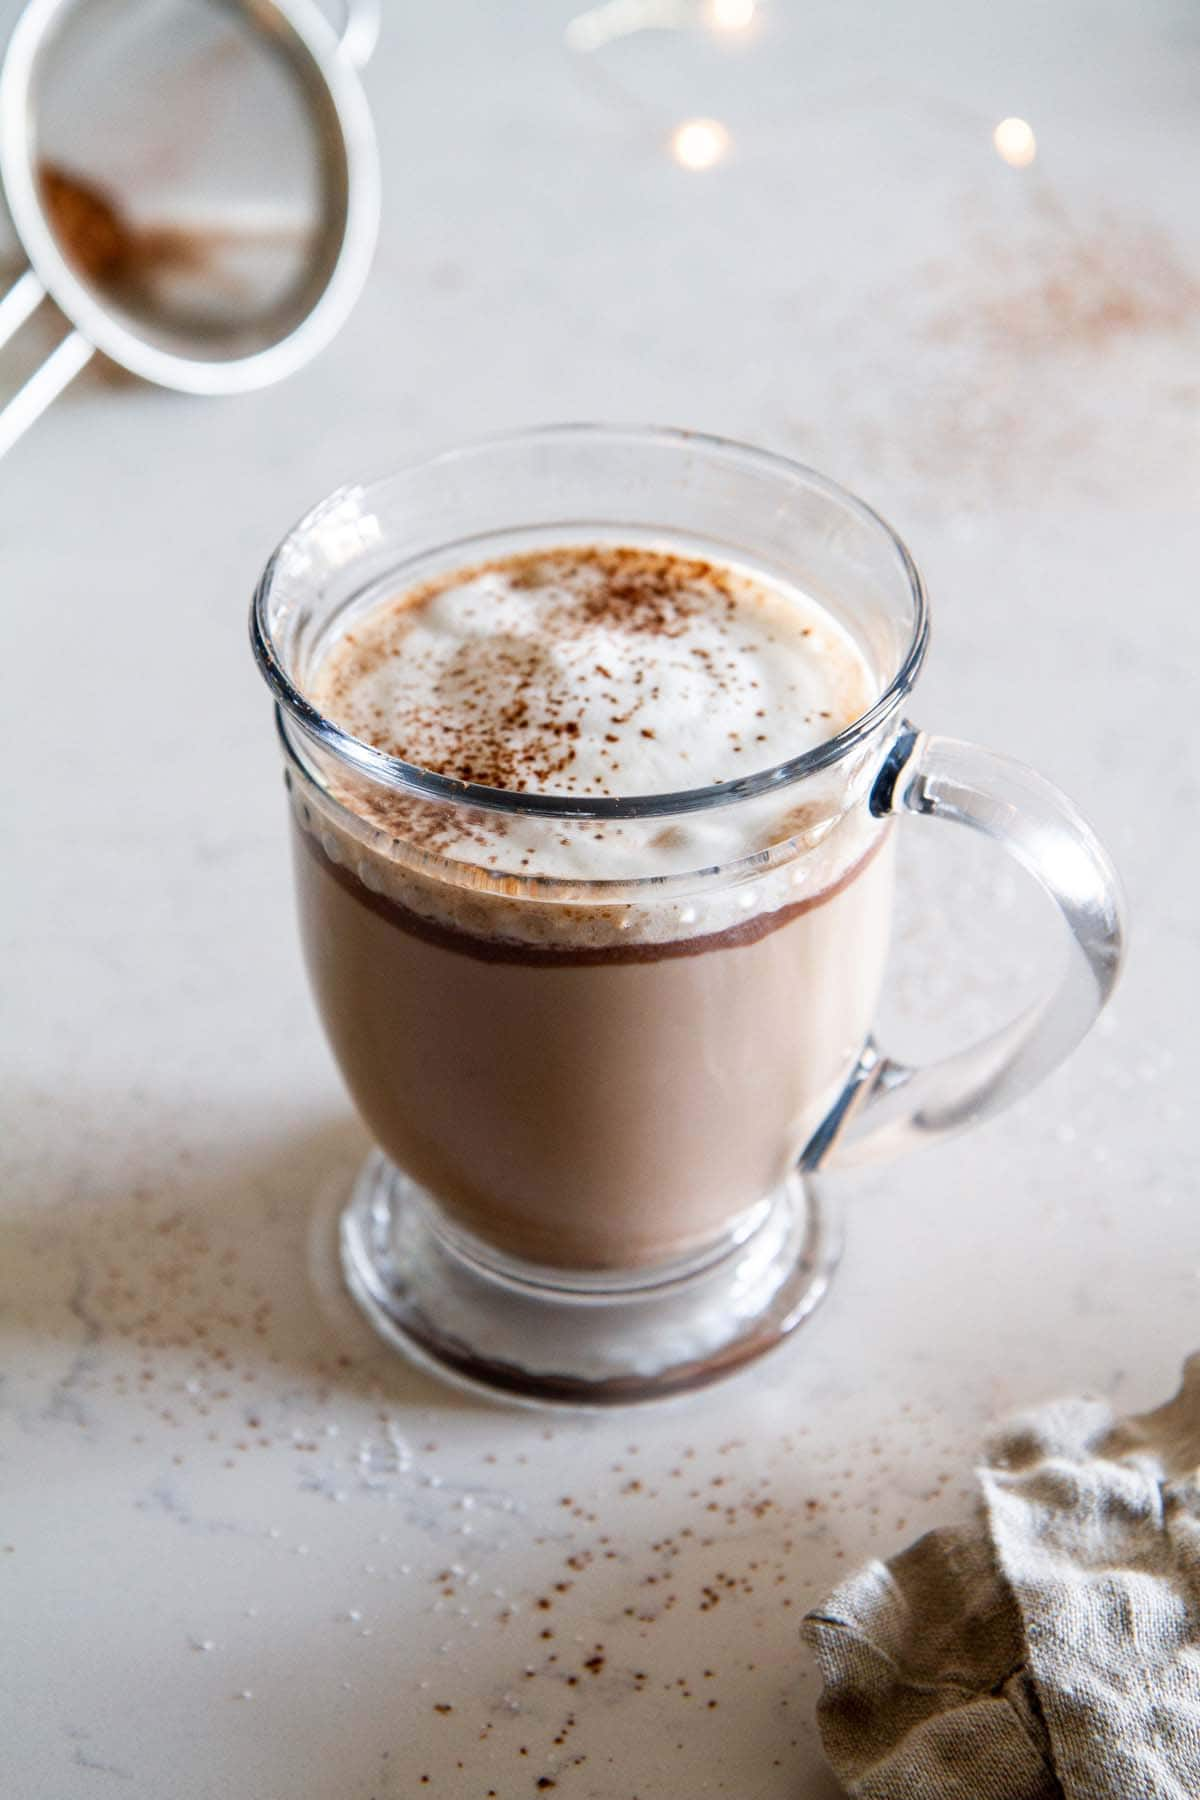 Chocolate Hazelnut Latte -- a deliciously indulgent Nutella latte recipe that will perk up any day. @girlversusdough #girlversusdough #drinkrecipe #chocolate #coffeerecipe